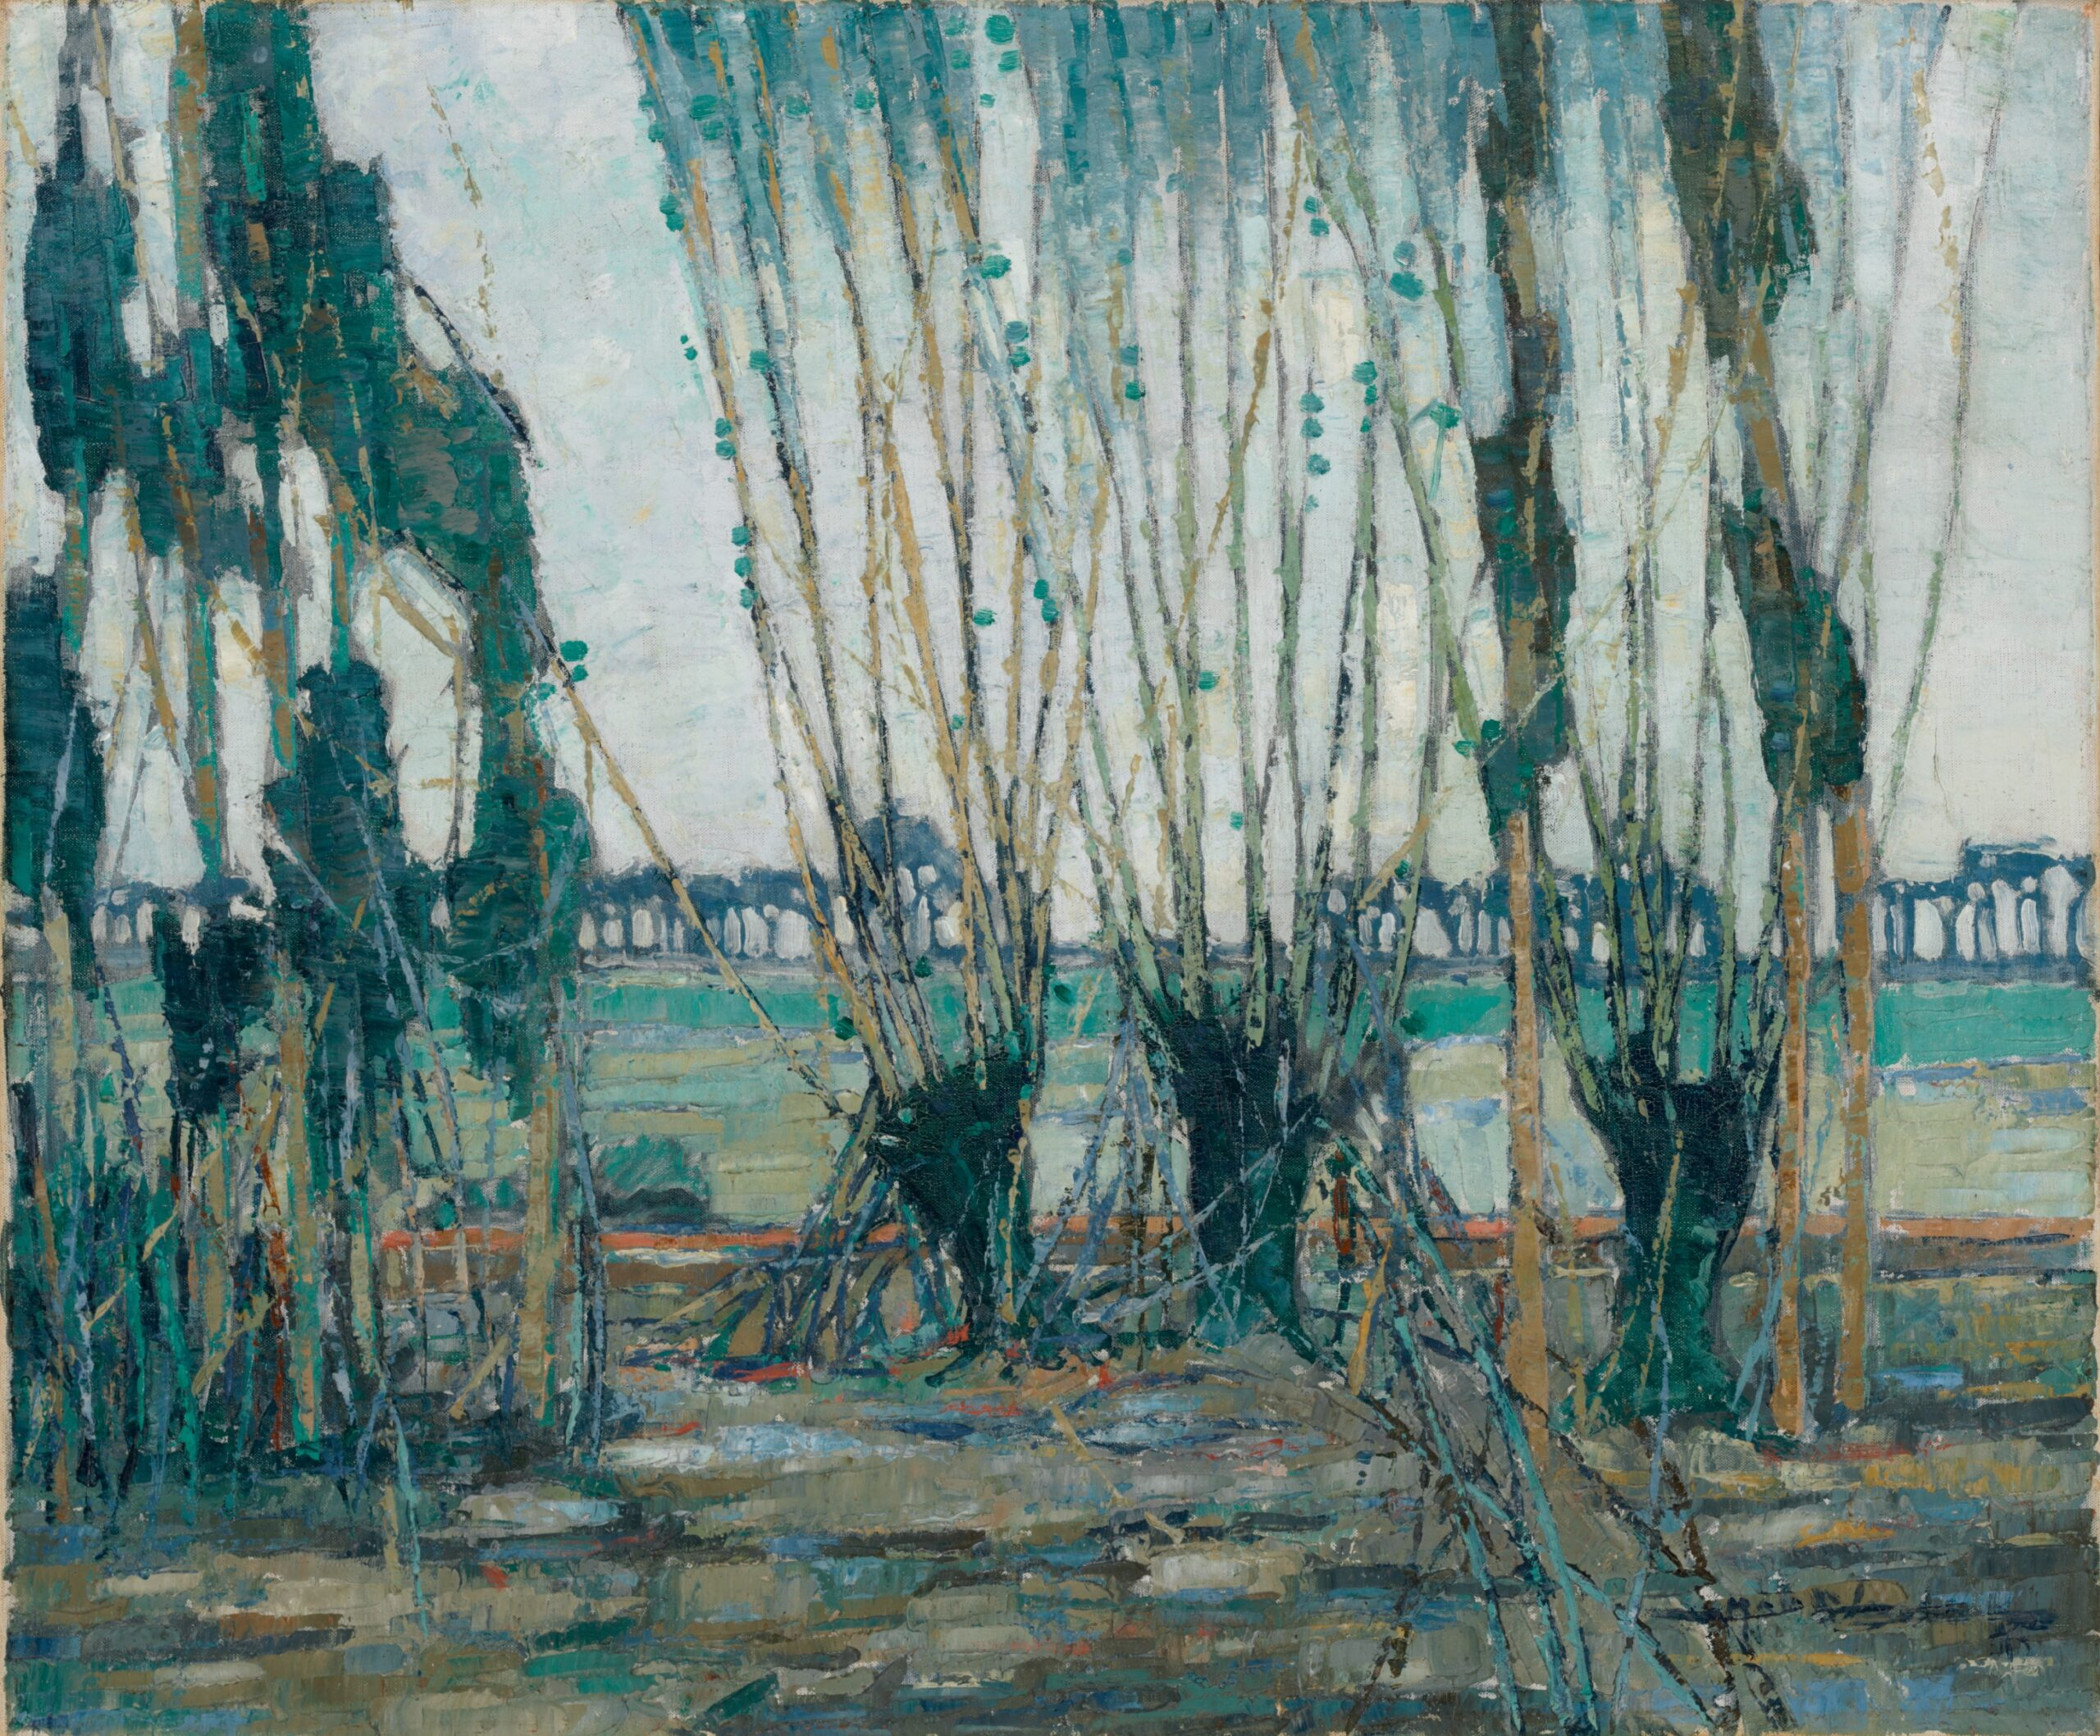 Hale Woodruff. Normandy Landscape. 1928. The Baltimore Museum of Art: Edward Joseph Gallagher III Memorial Fund, BMA 2002.279. Art © Estate of Hale Woodruff/Licensed by VAGA at Artists Rights Society (ARS), NY